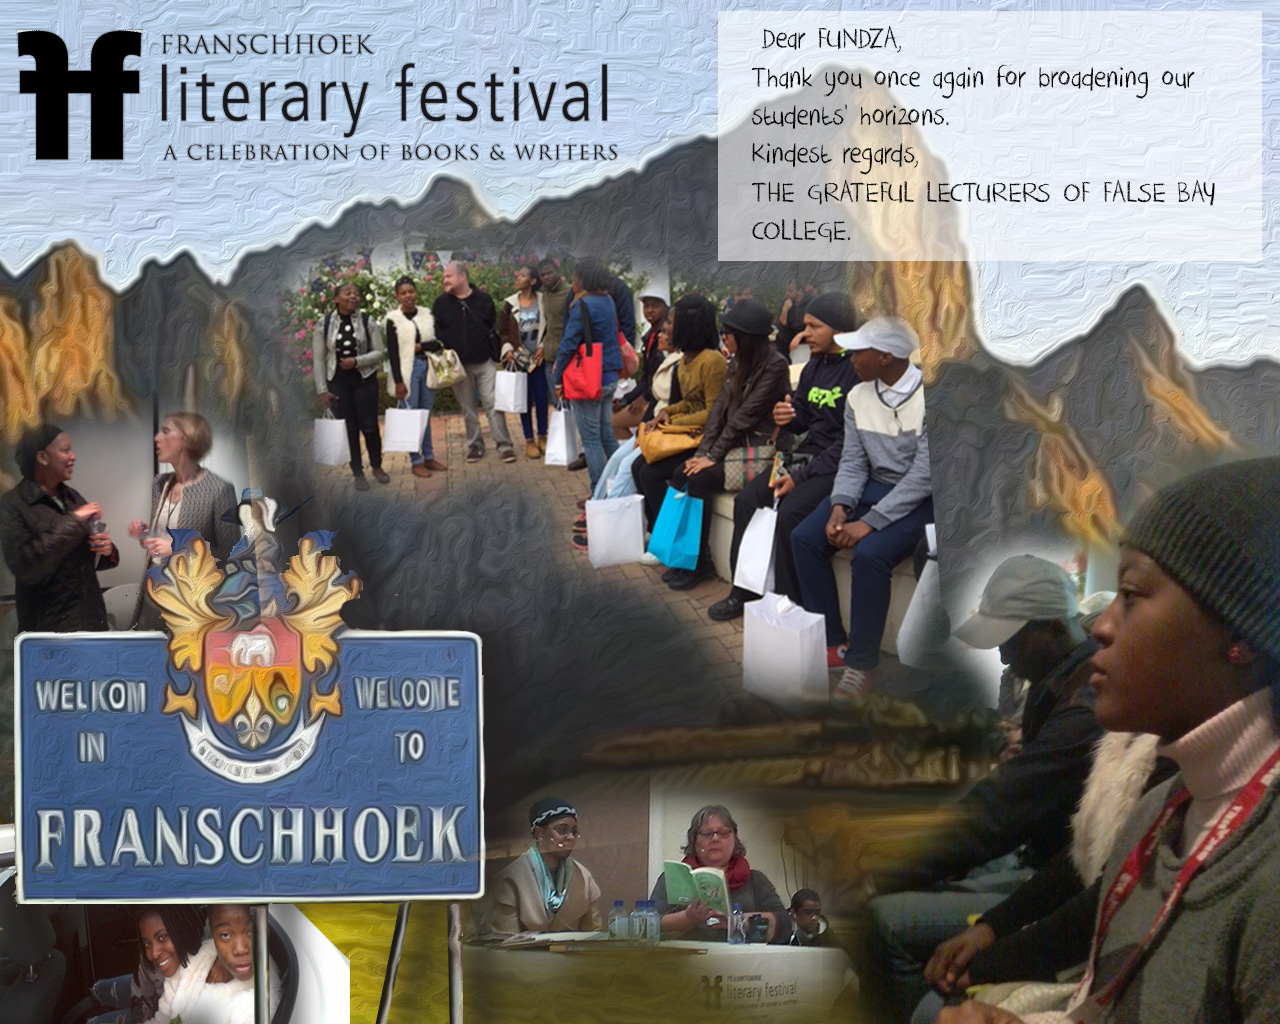 Getting inspired at Franschhoek Literary Festival